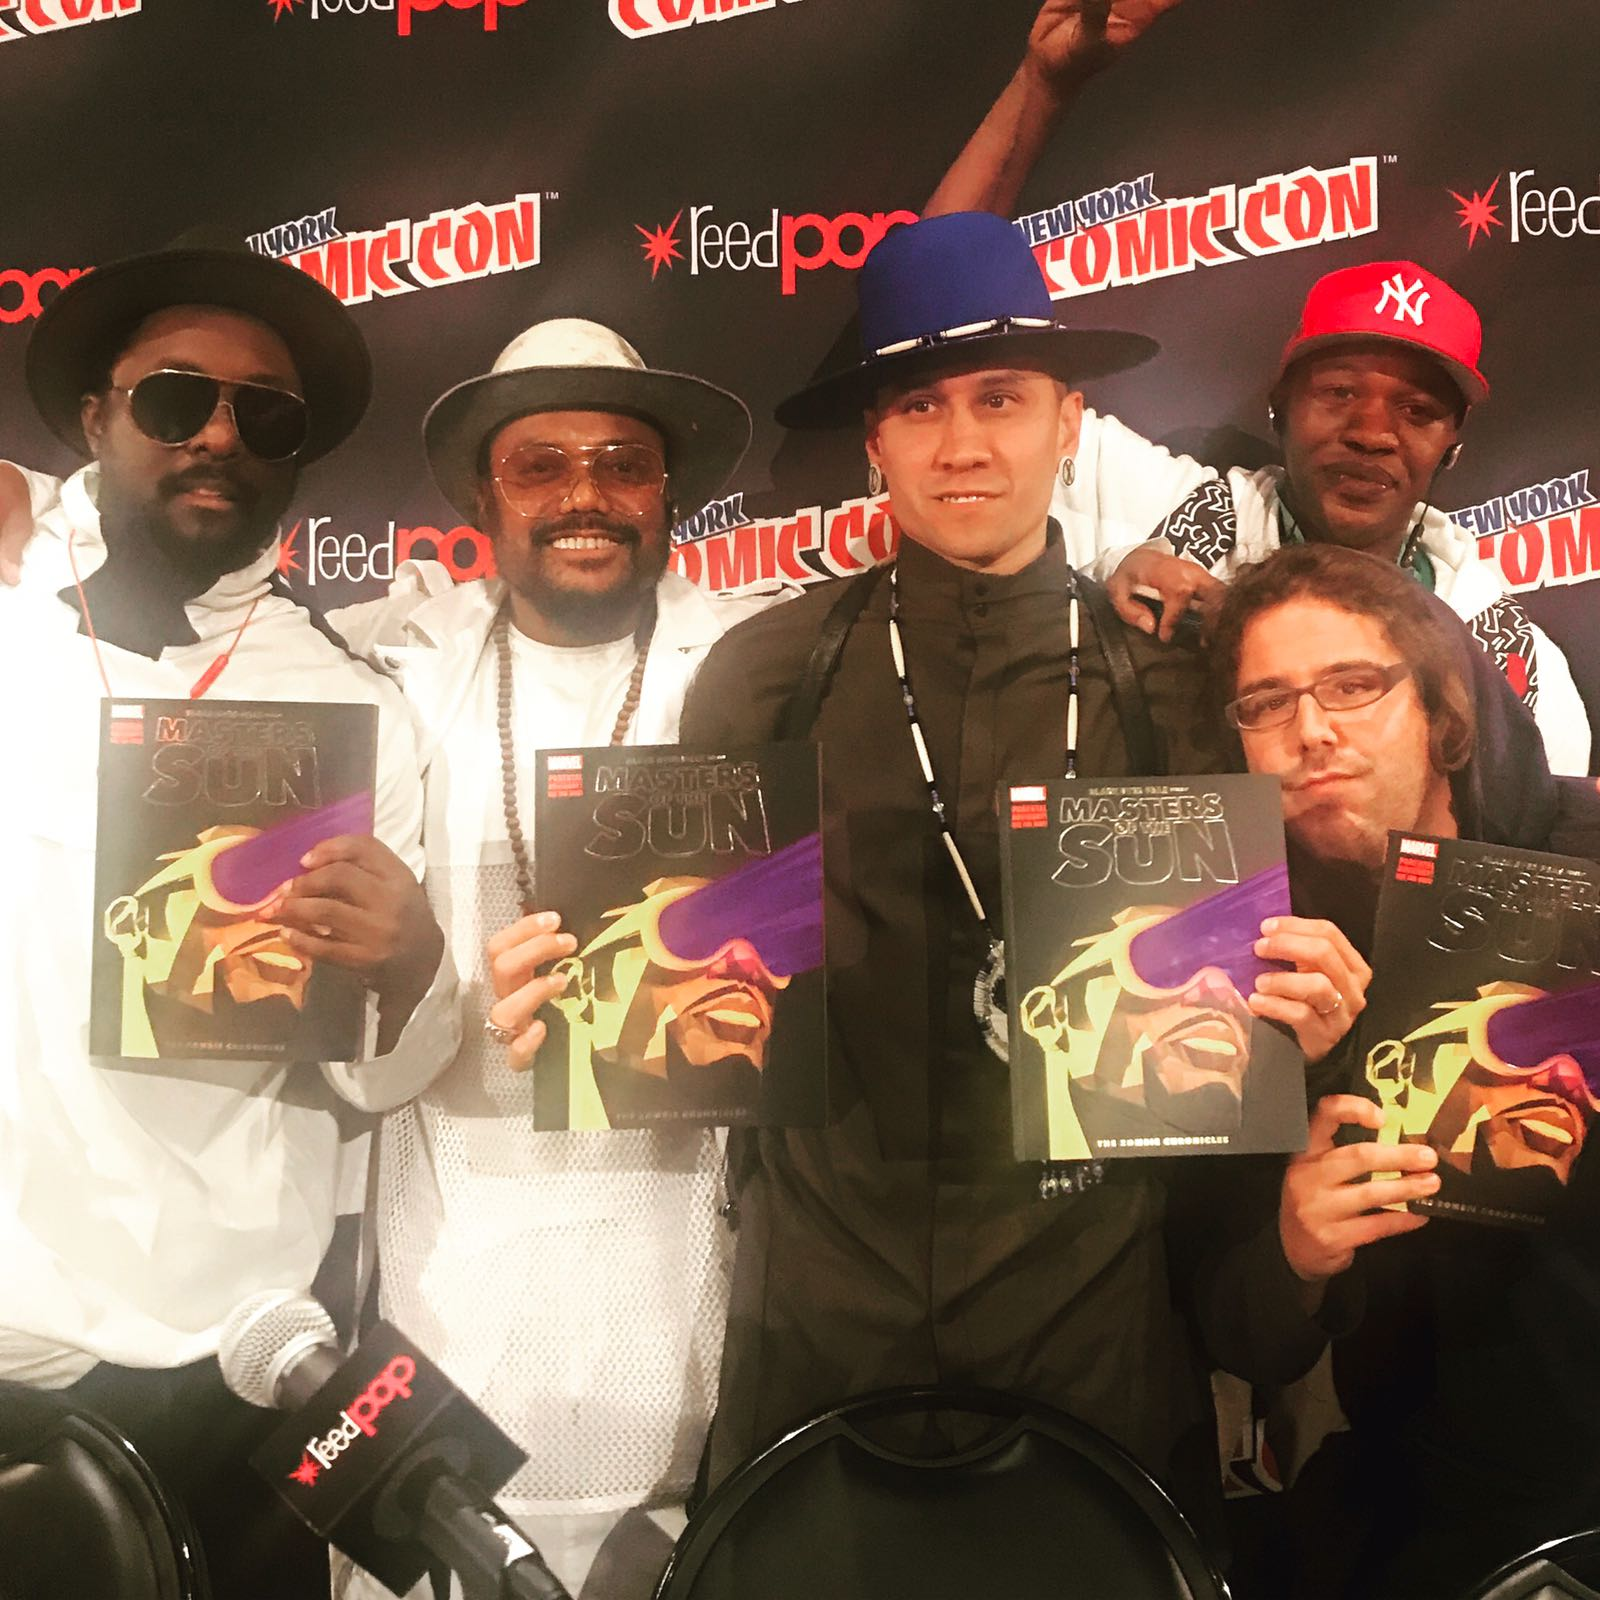 Thank you #NYCC! It was a great day. See you in LA for the @StanLeeComicCon  #MastersOfTheSun @Marvel https://t.co/p5fkS2QAS4